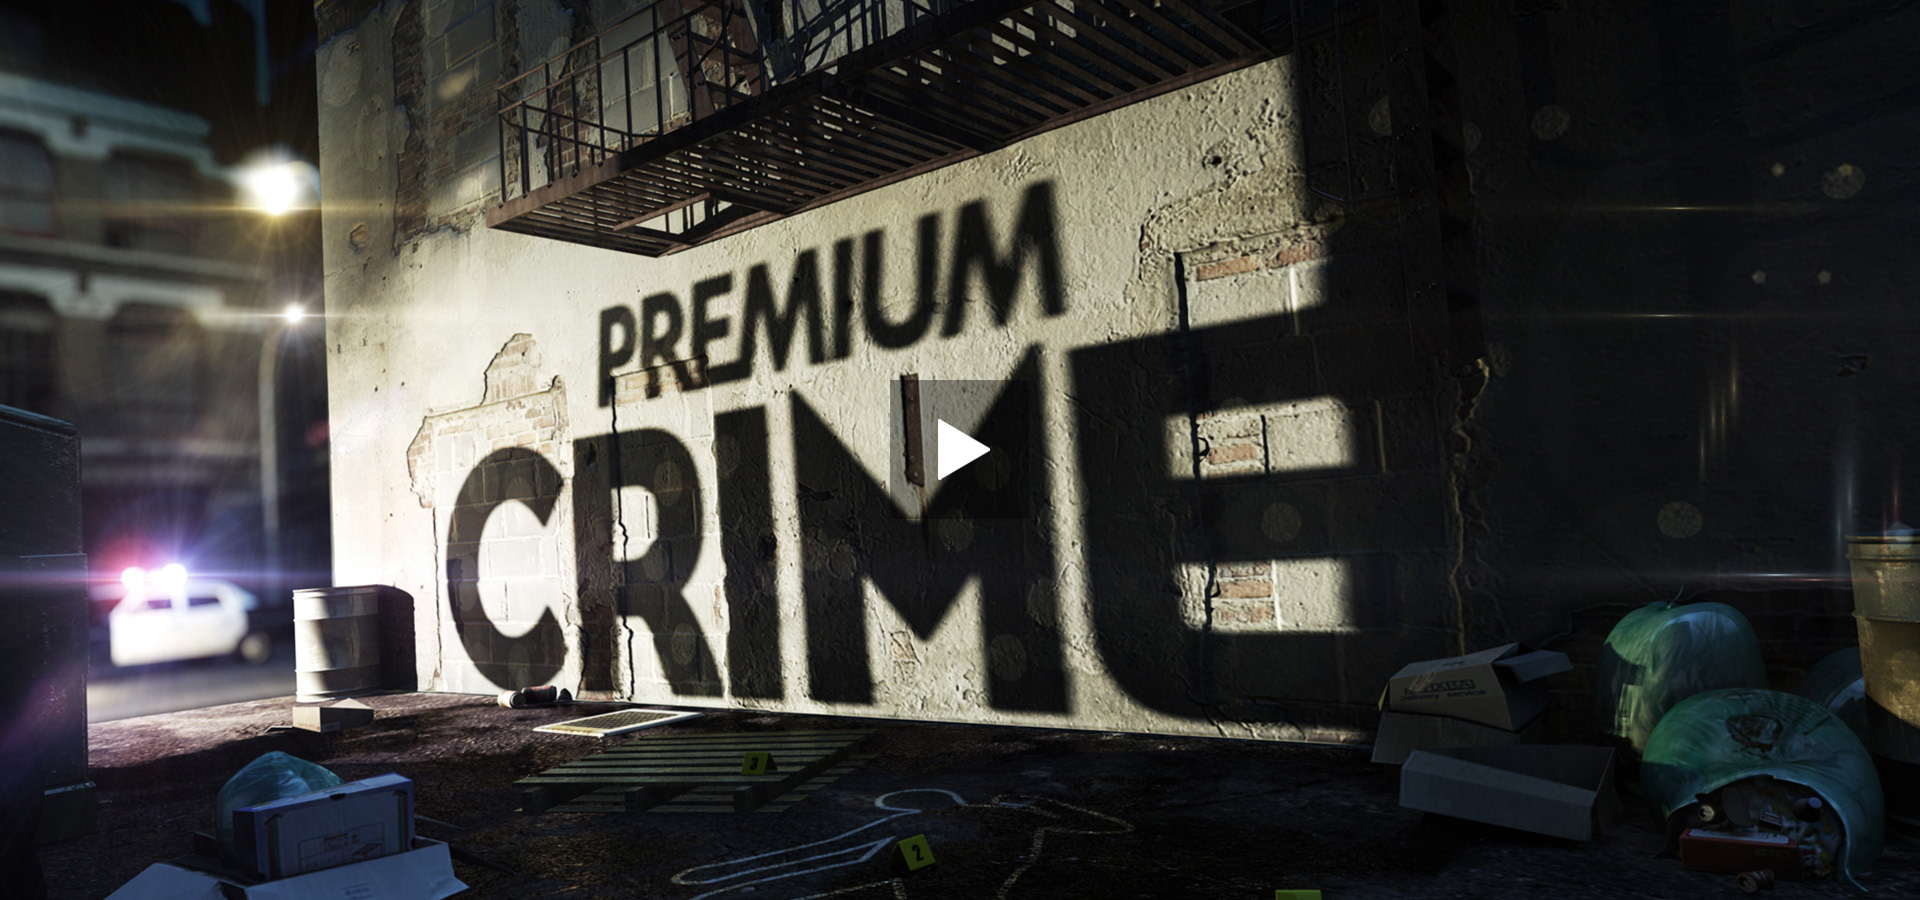 Monkey Talkie per Mediaset Premium Crime - Broadcast design - TV Branding - Promo - Idents